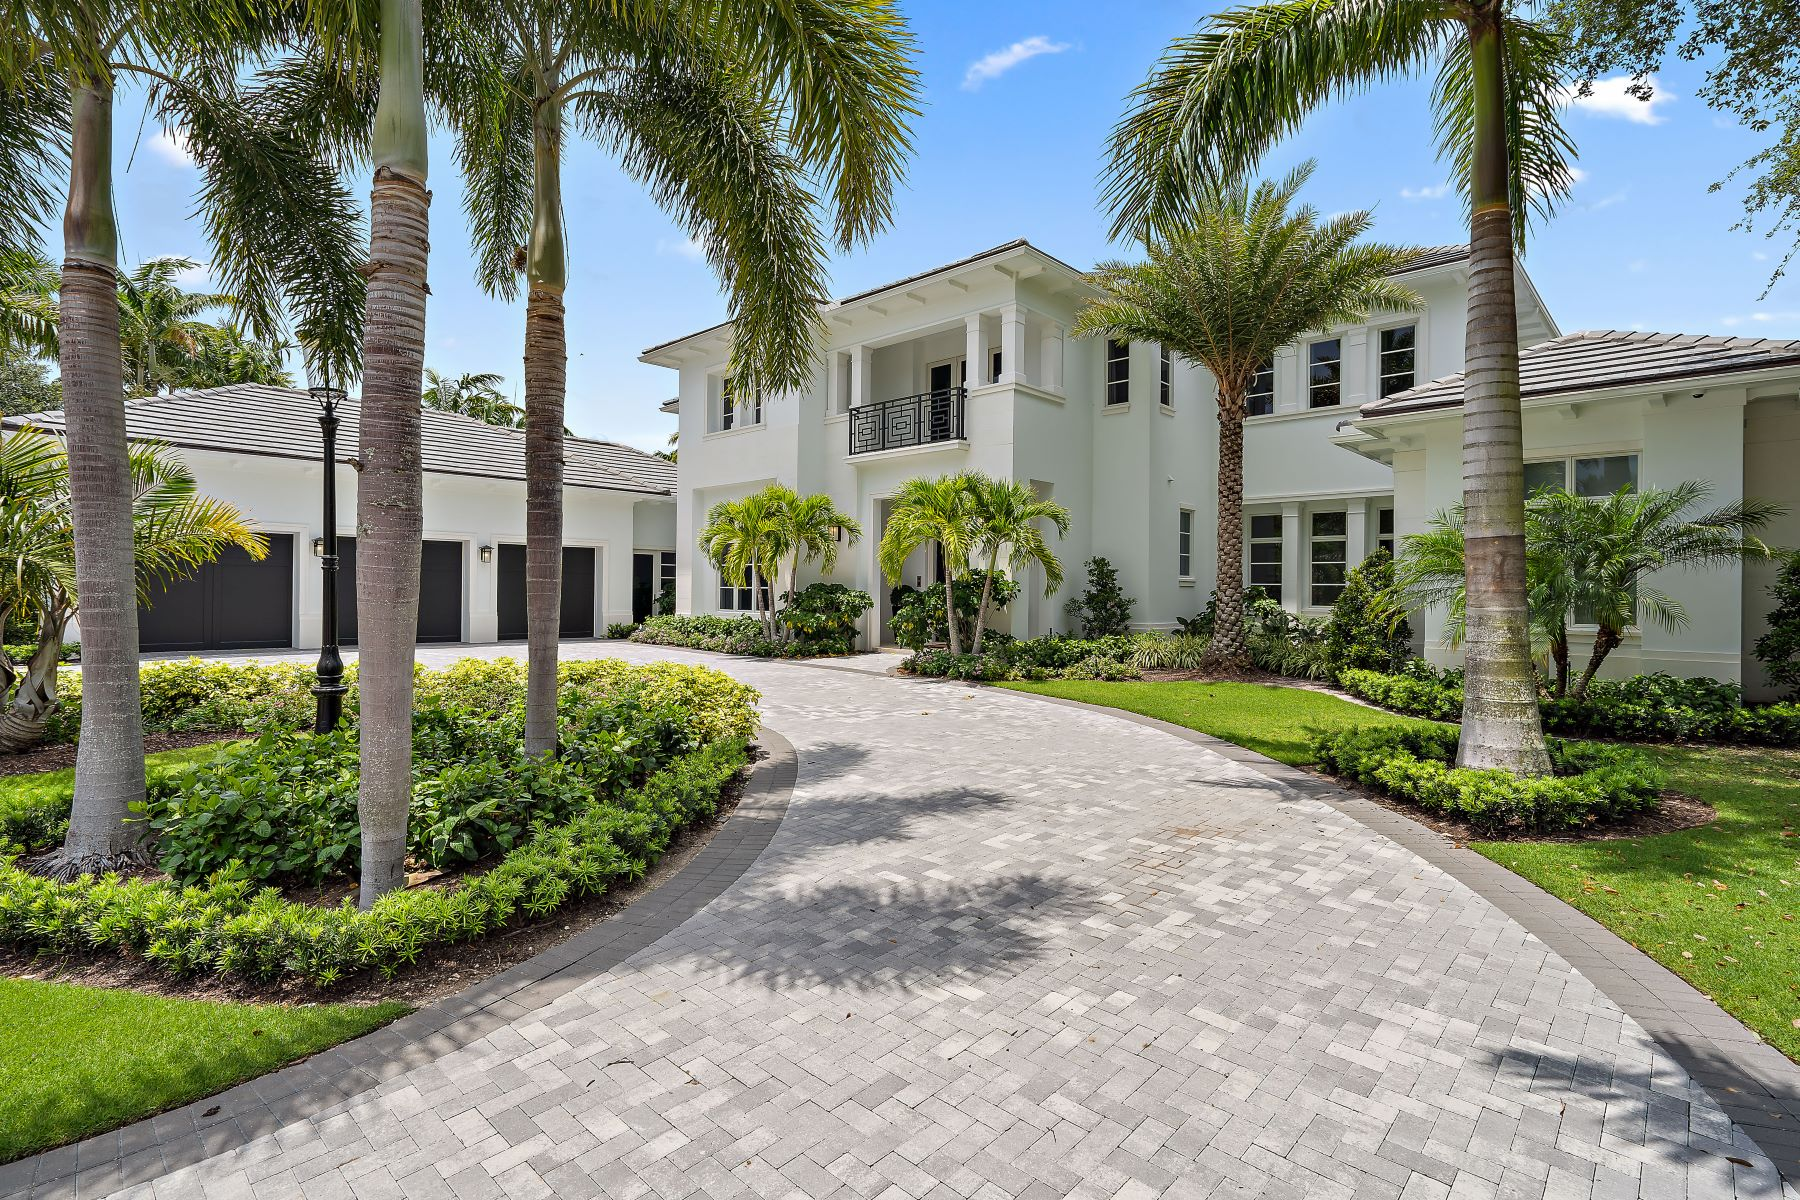 House for Sale at 11757 Elina Court 11757 Elina Court Palm Beach Gardens, Florida 33418 United States